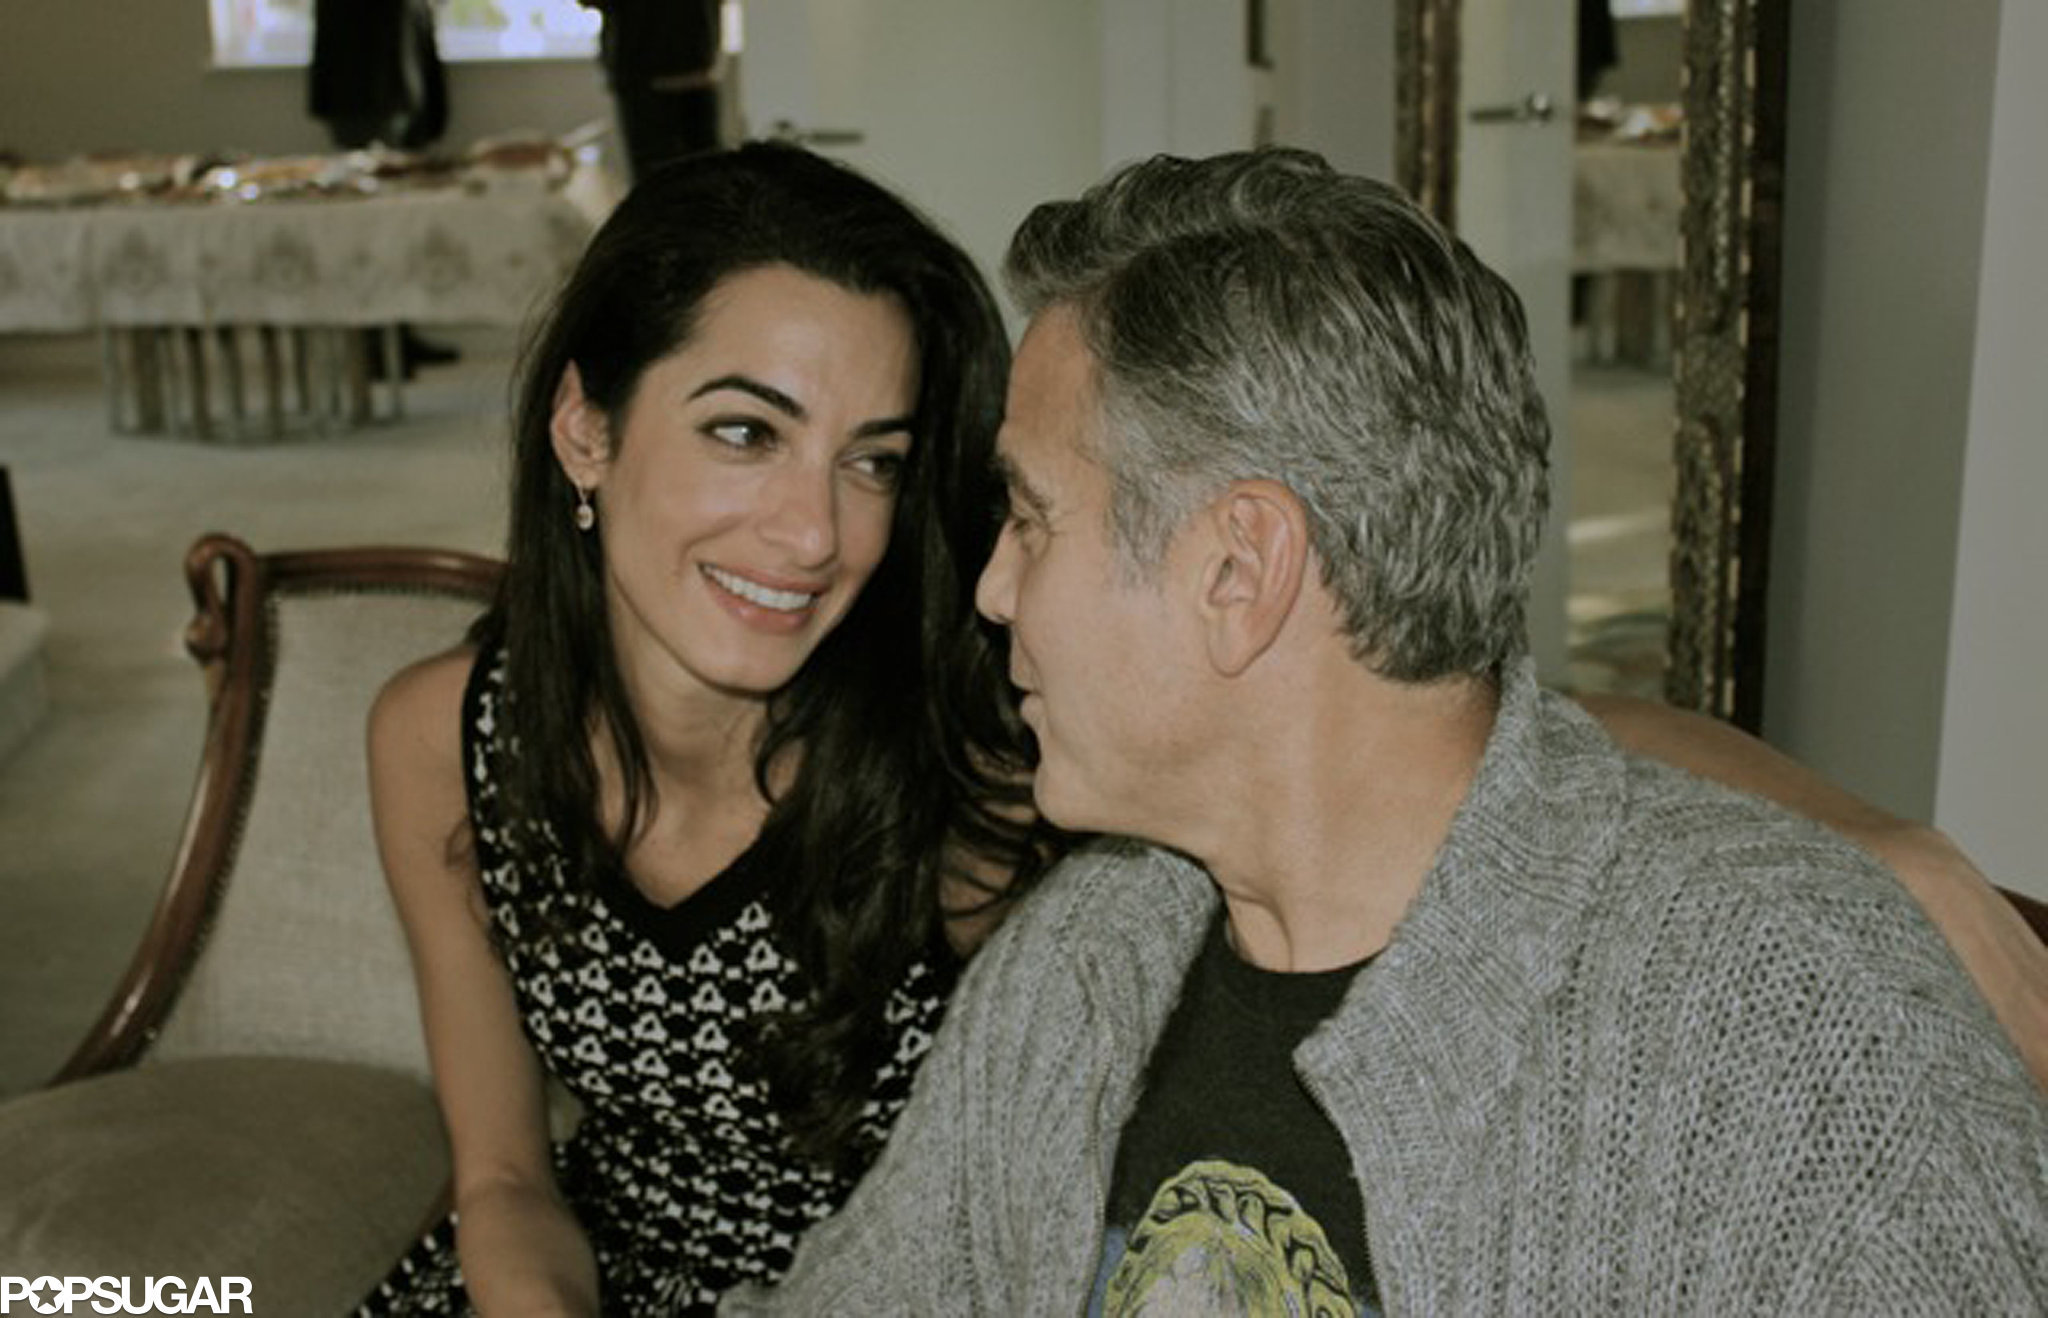 George and Amal gave each other a loving glance while in Tanzania in March 2014.